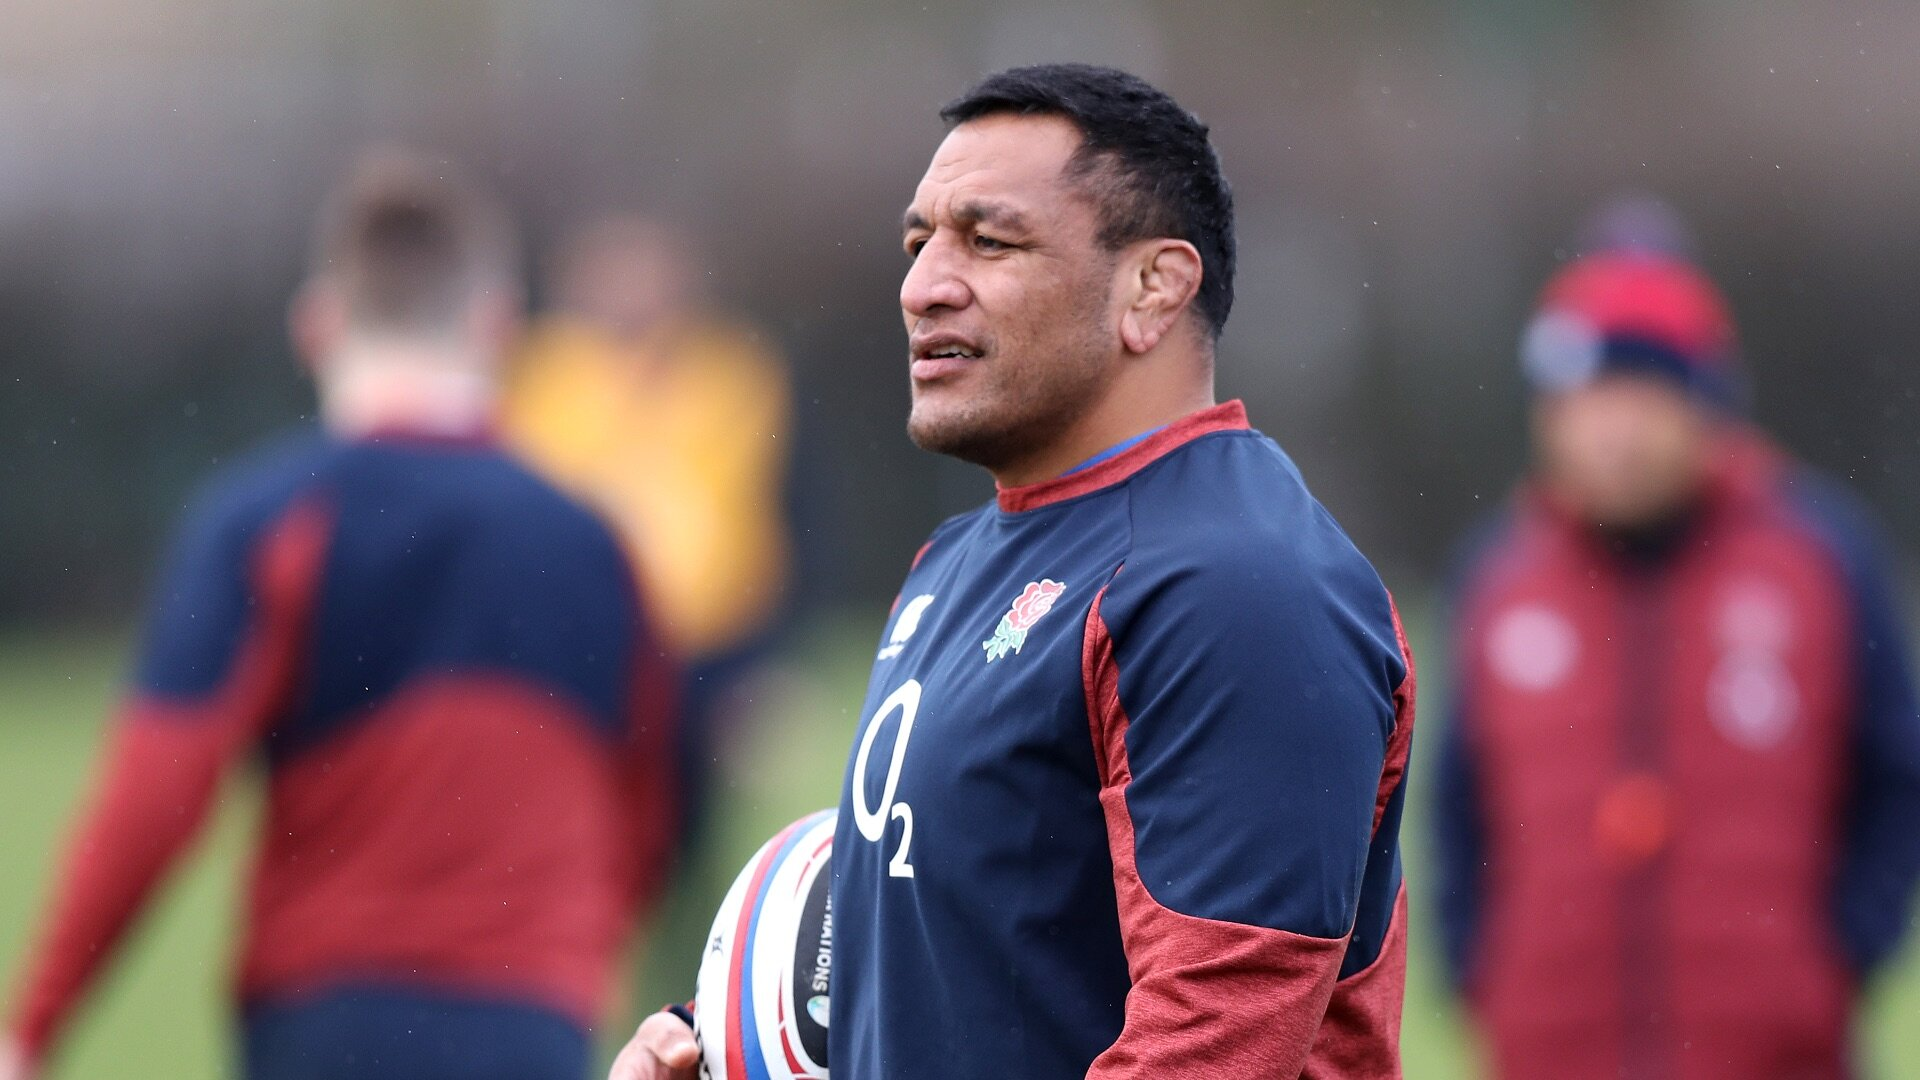 Mako Vunipola has singled out the best coach he has ever worked with